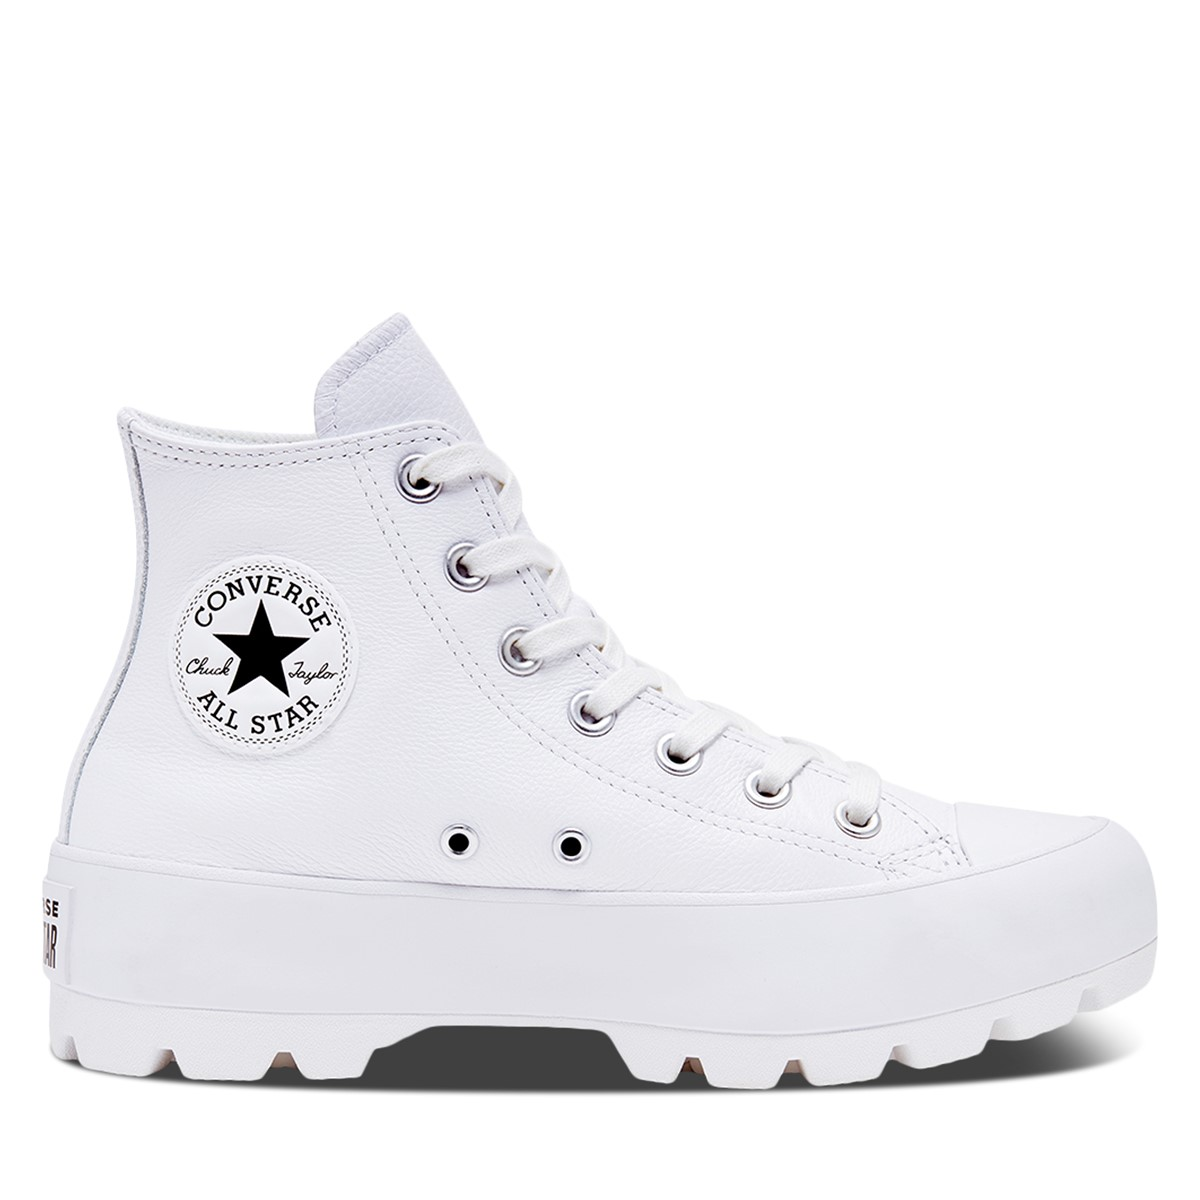 Baskets Chuck Taylor Hi Lugged Leather blanches pour femmes